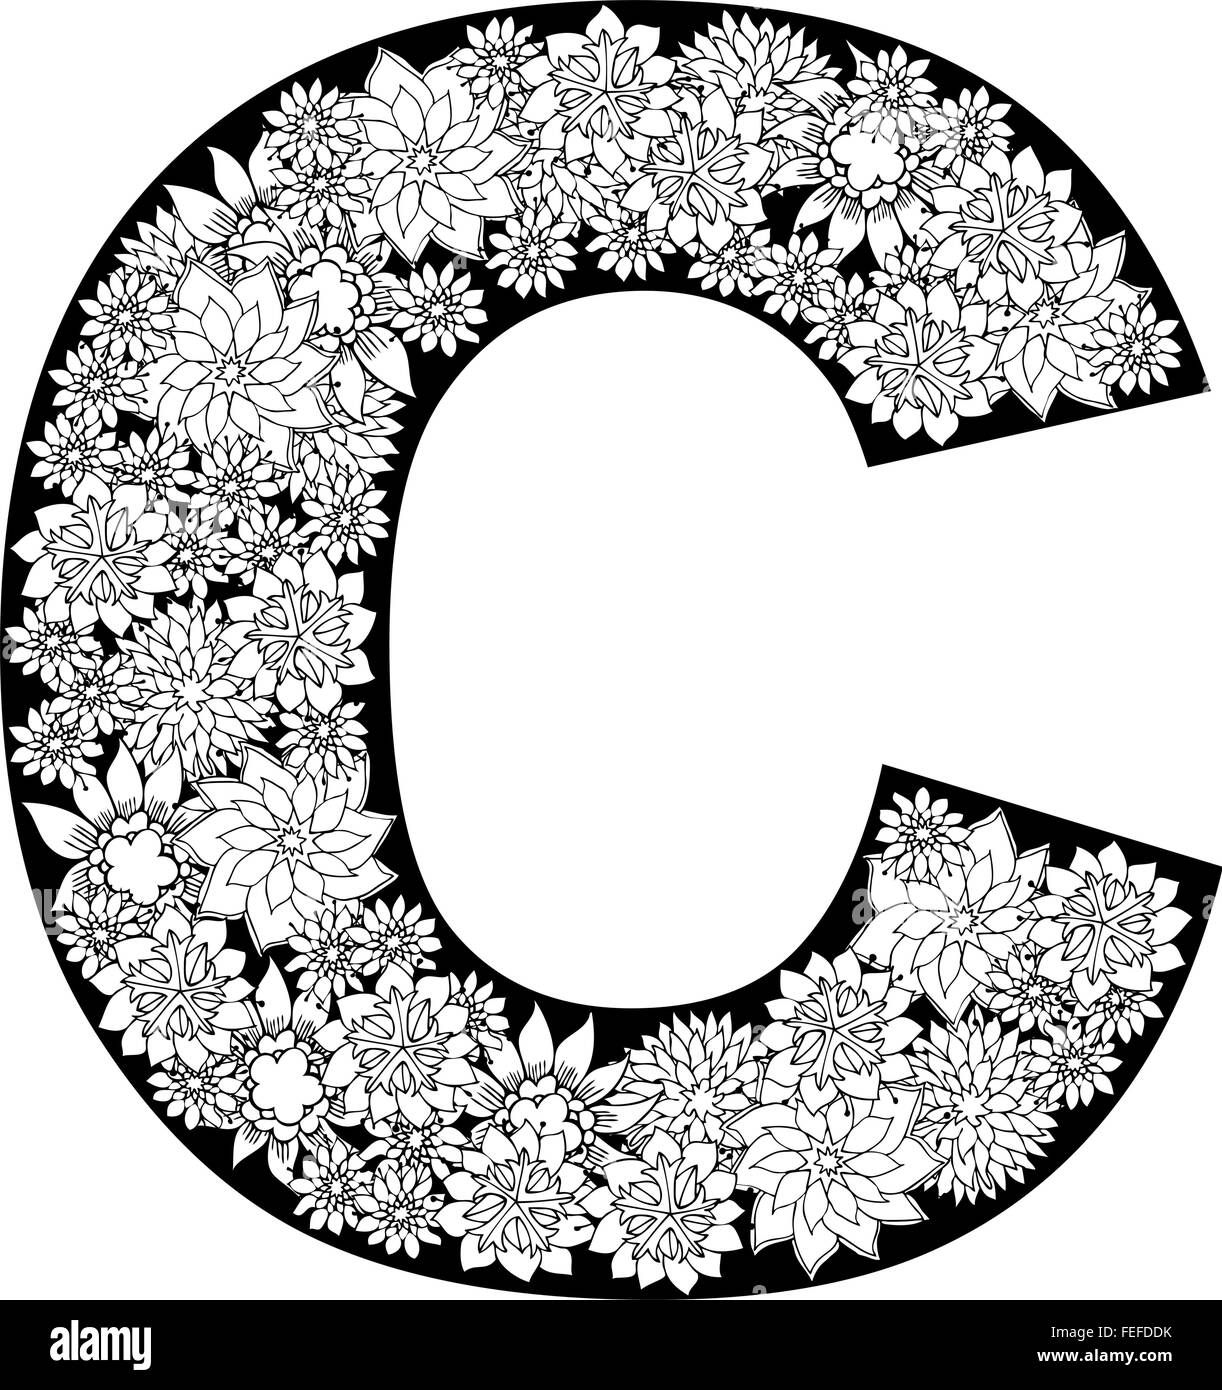 hand drawn floral alphabet design letter c stock vector art illustration vector image. Black Bedroom Furniture Sets. Home Design Ideas